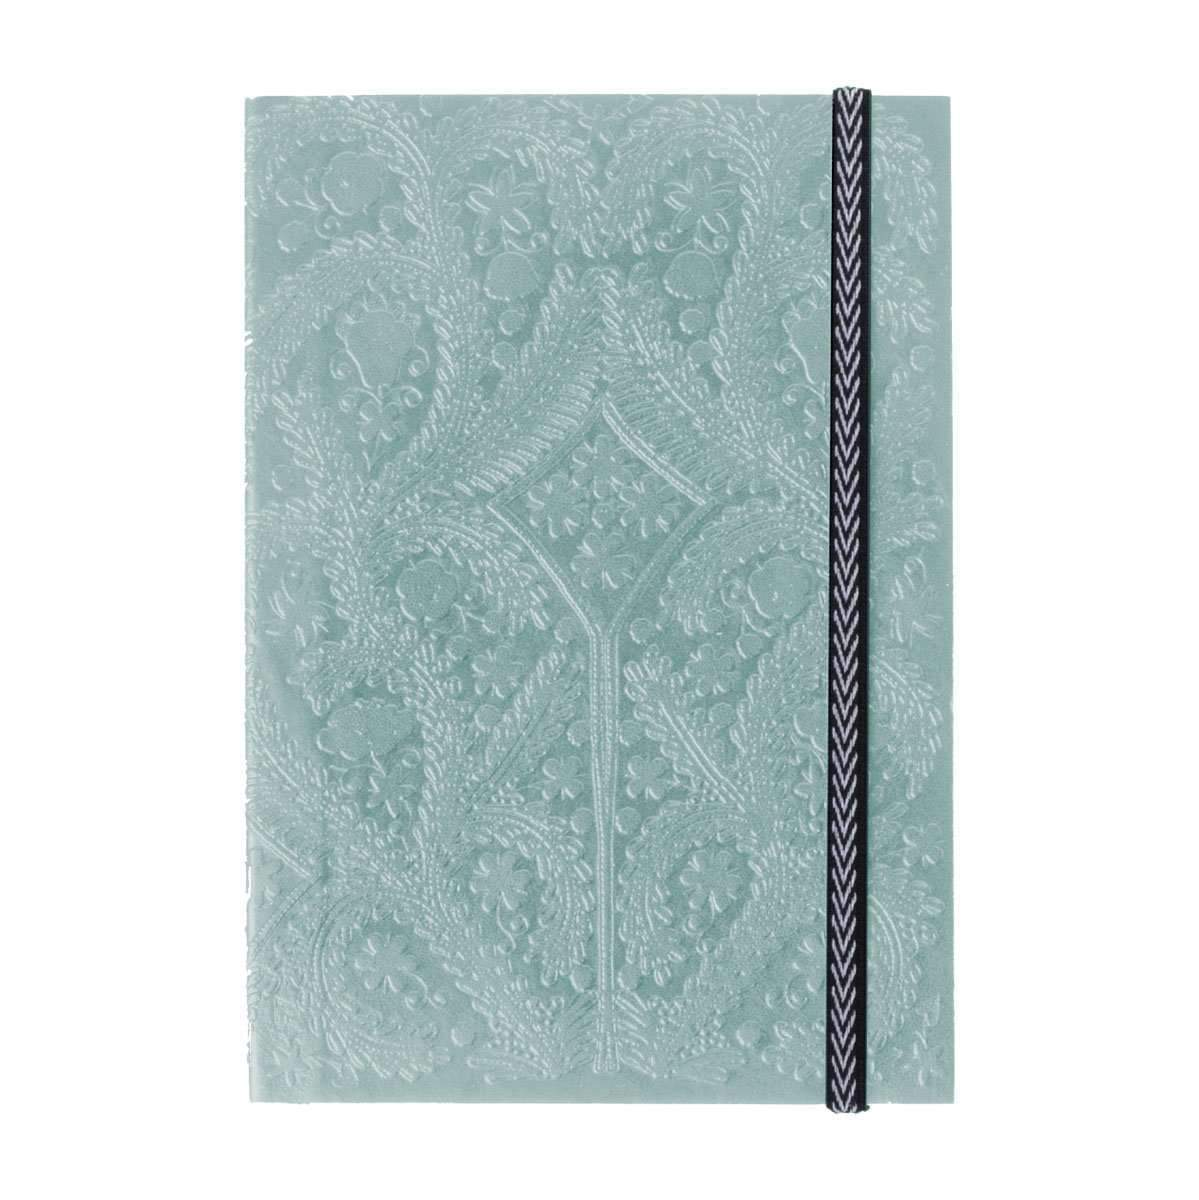 A6 Moon Silver Notebook By Christian Lacroix